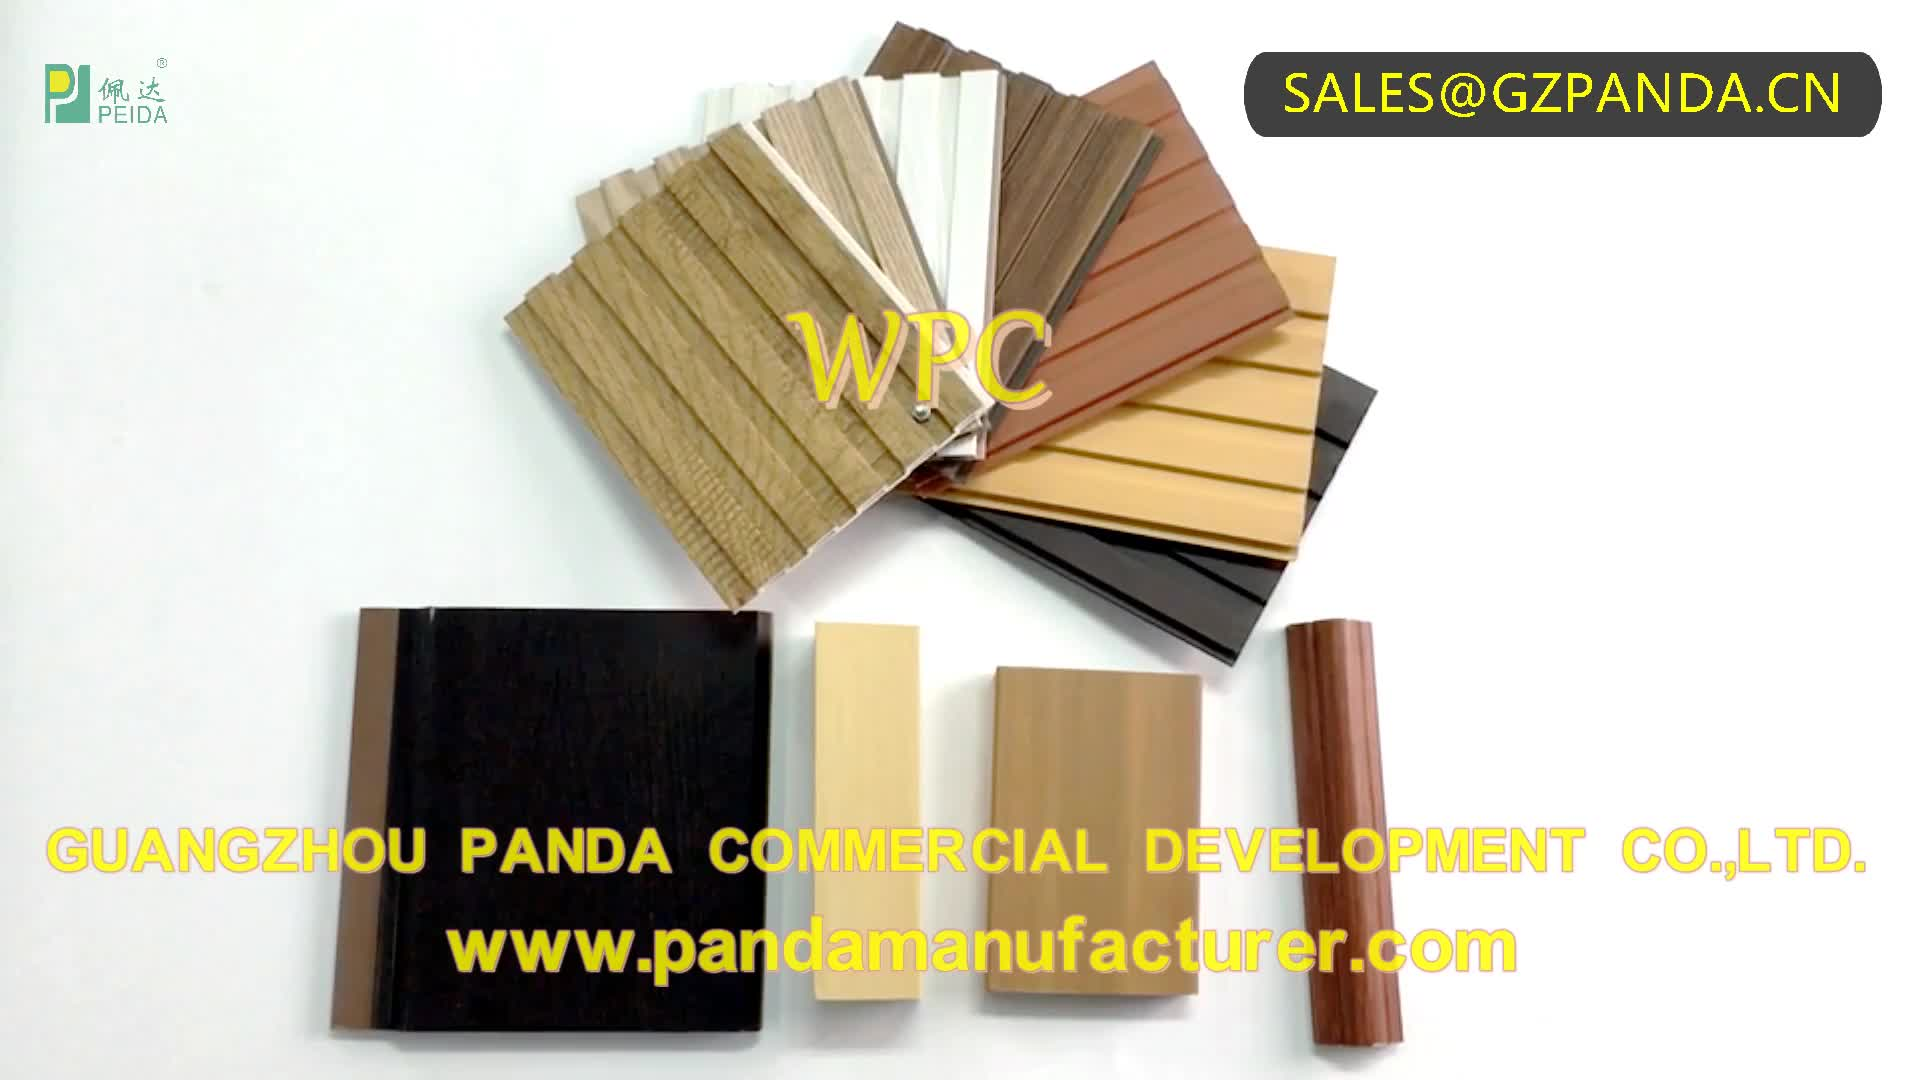 DIY Waterproof  WPC Co-Extrusion Decking Tile 30x30 Clips Prices Vietnam